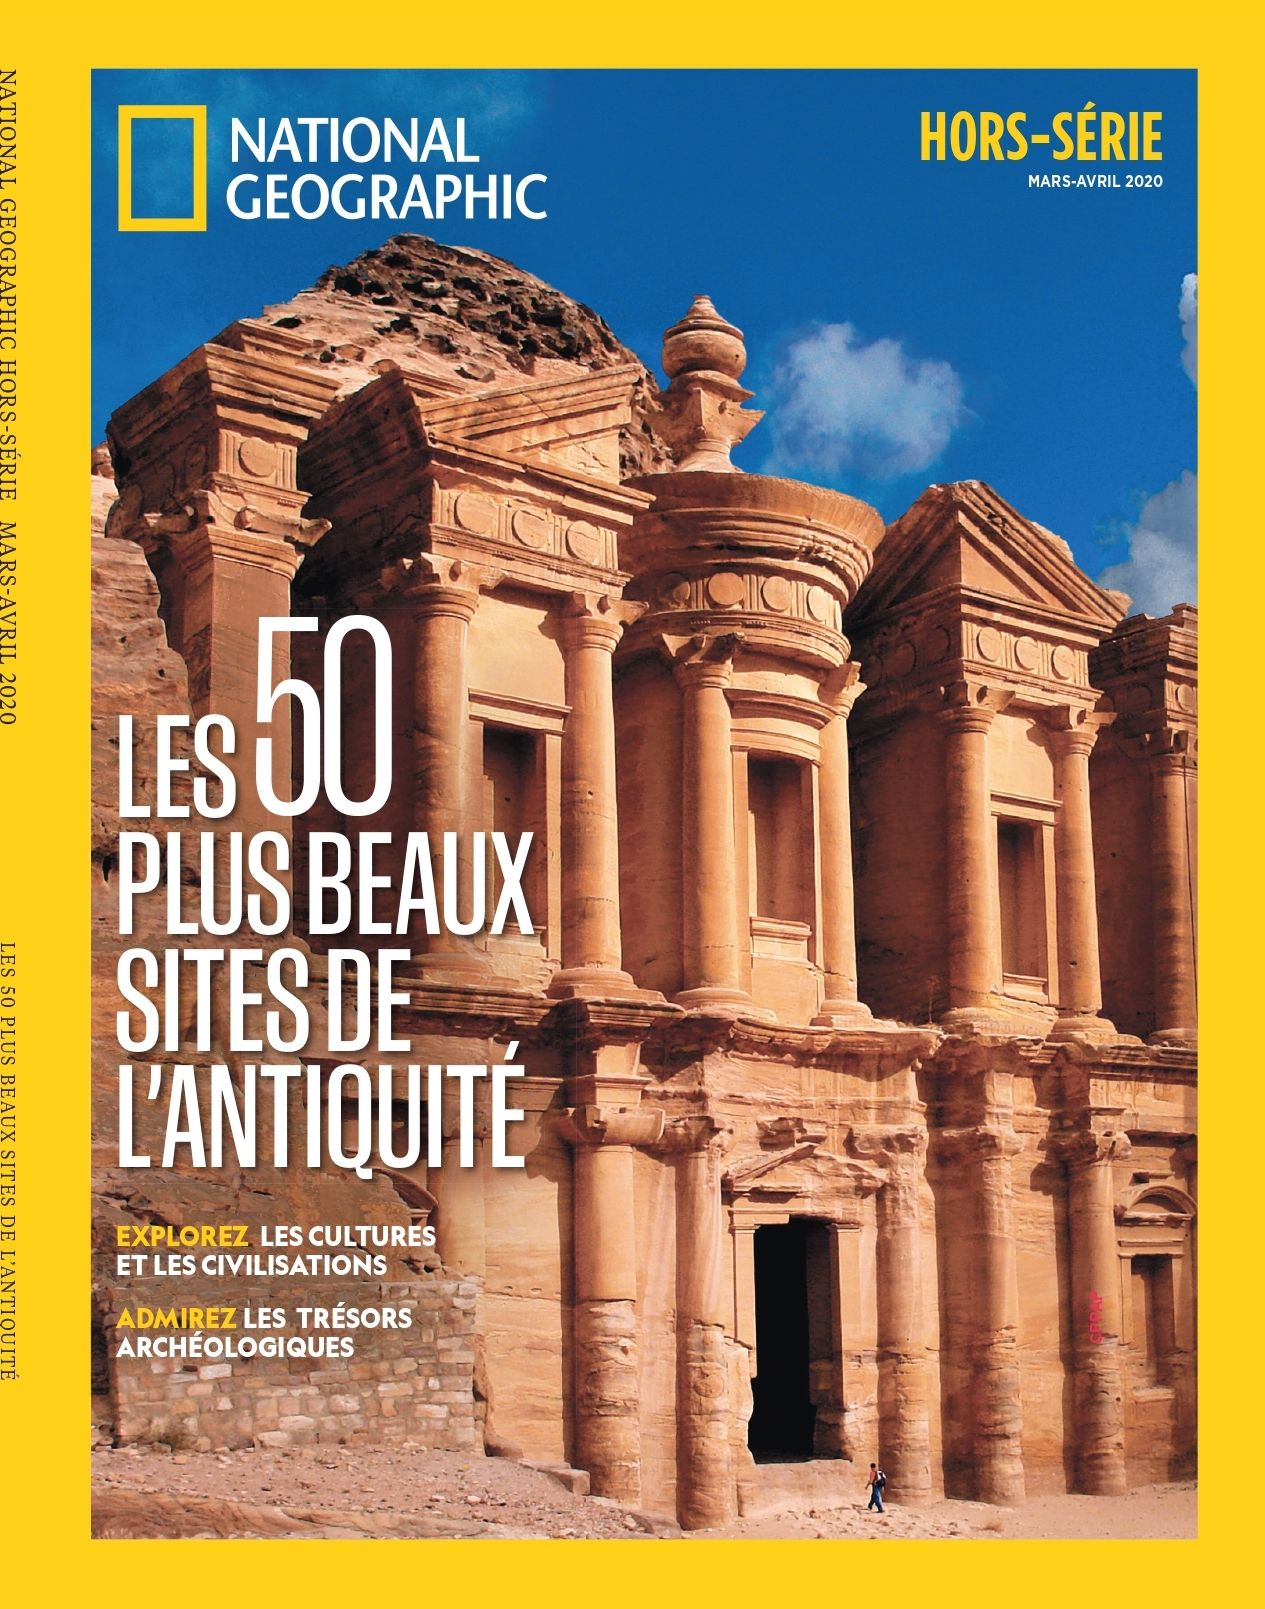 National Geographic Hors-série 56